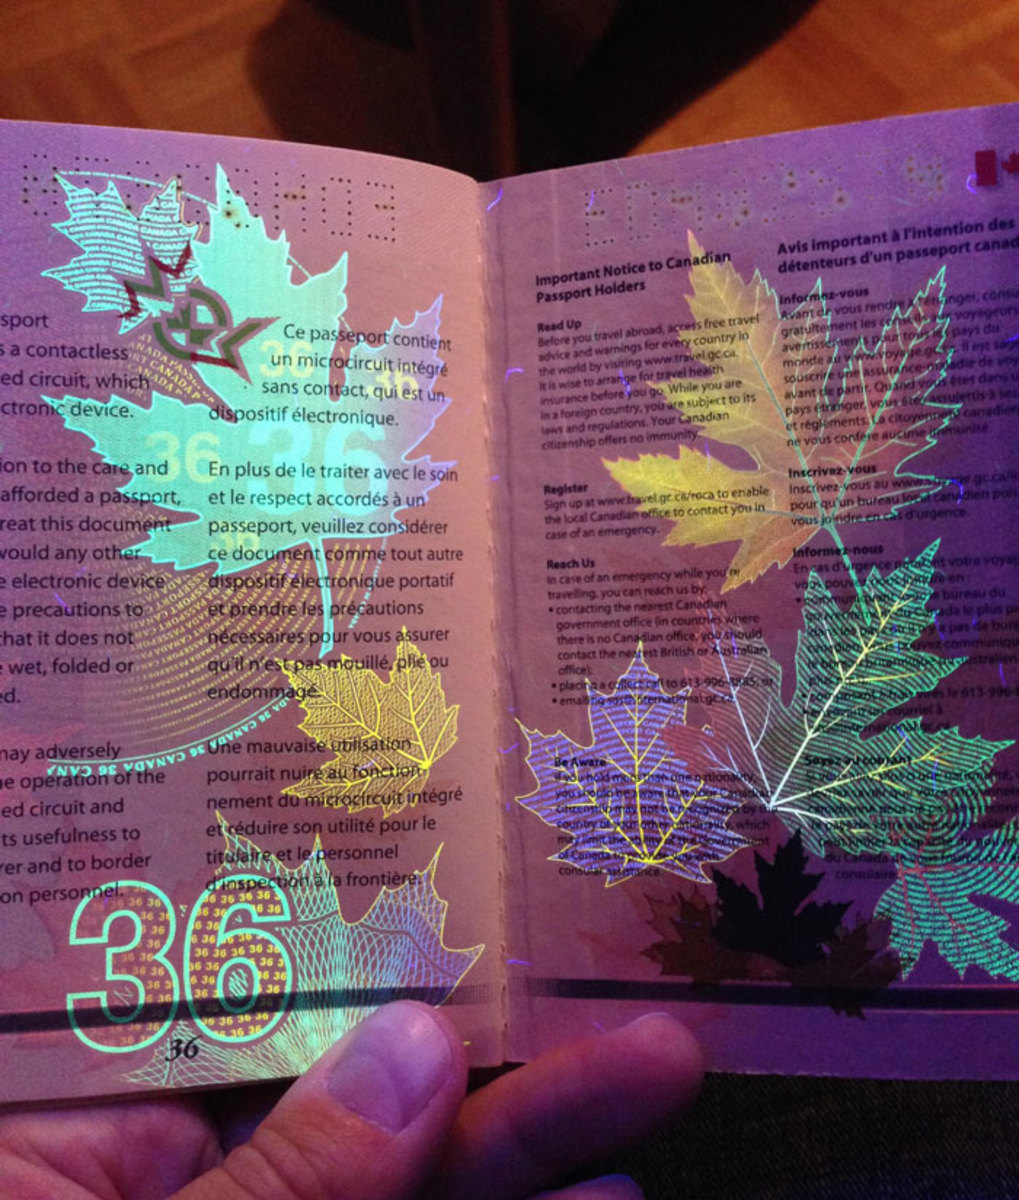 new-canadian-passport-uv-light-images-18